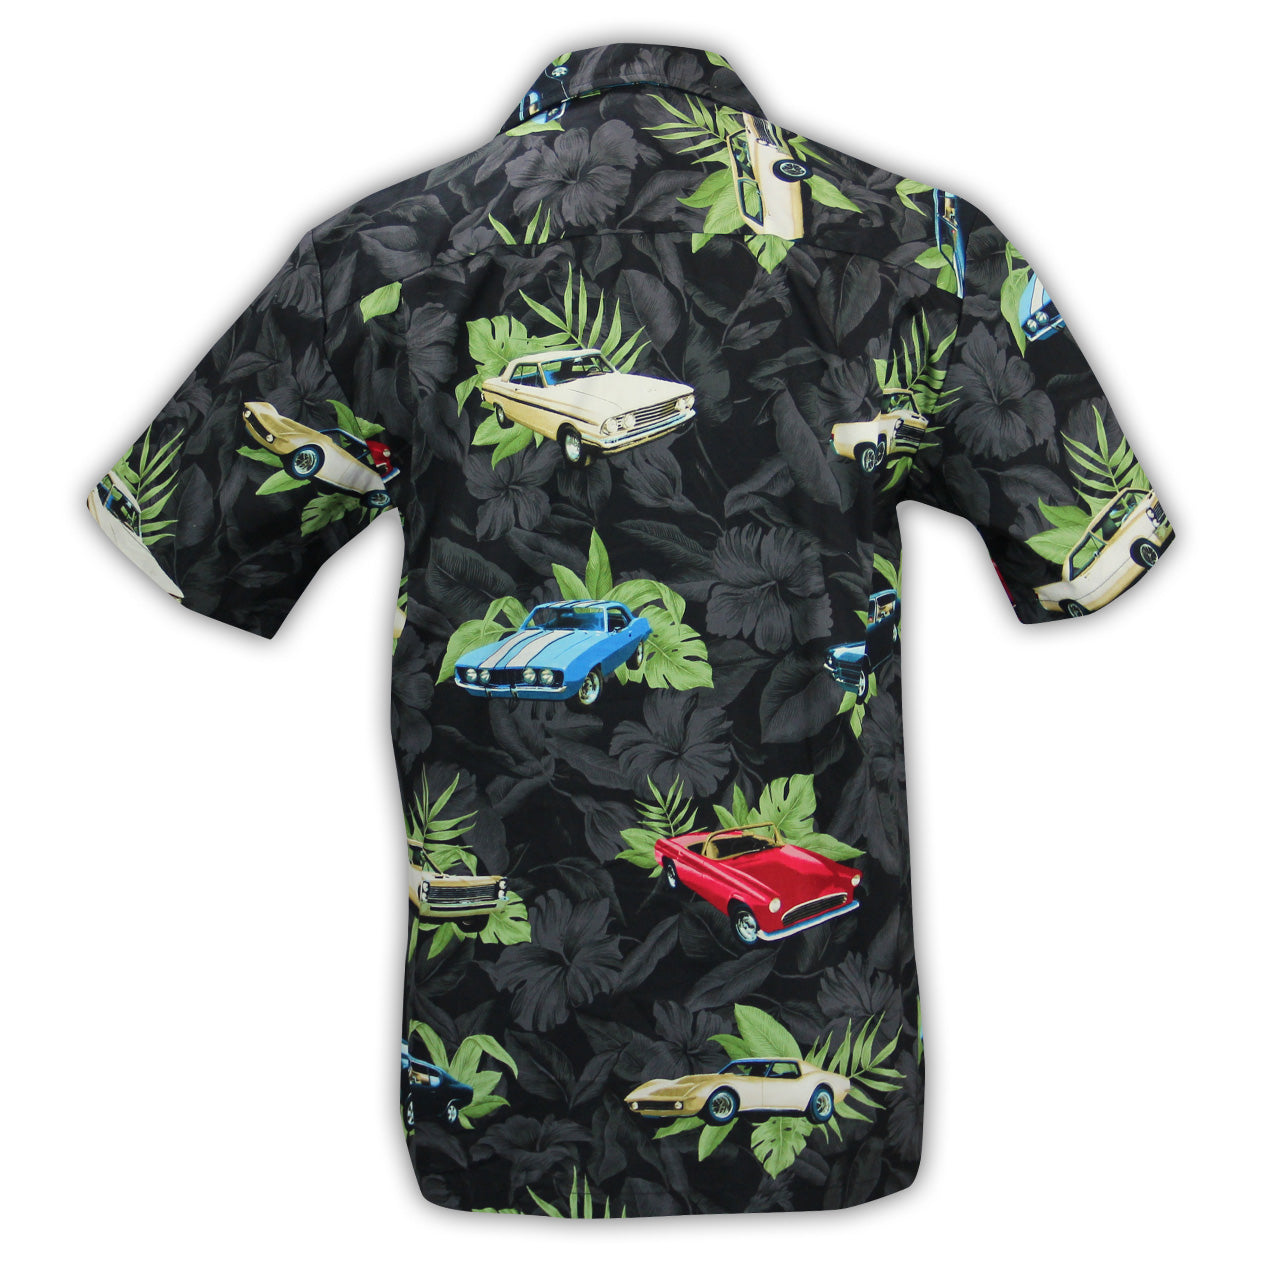 Photo of 2020 Mecum Men's Hawaiian Shirt back